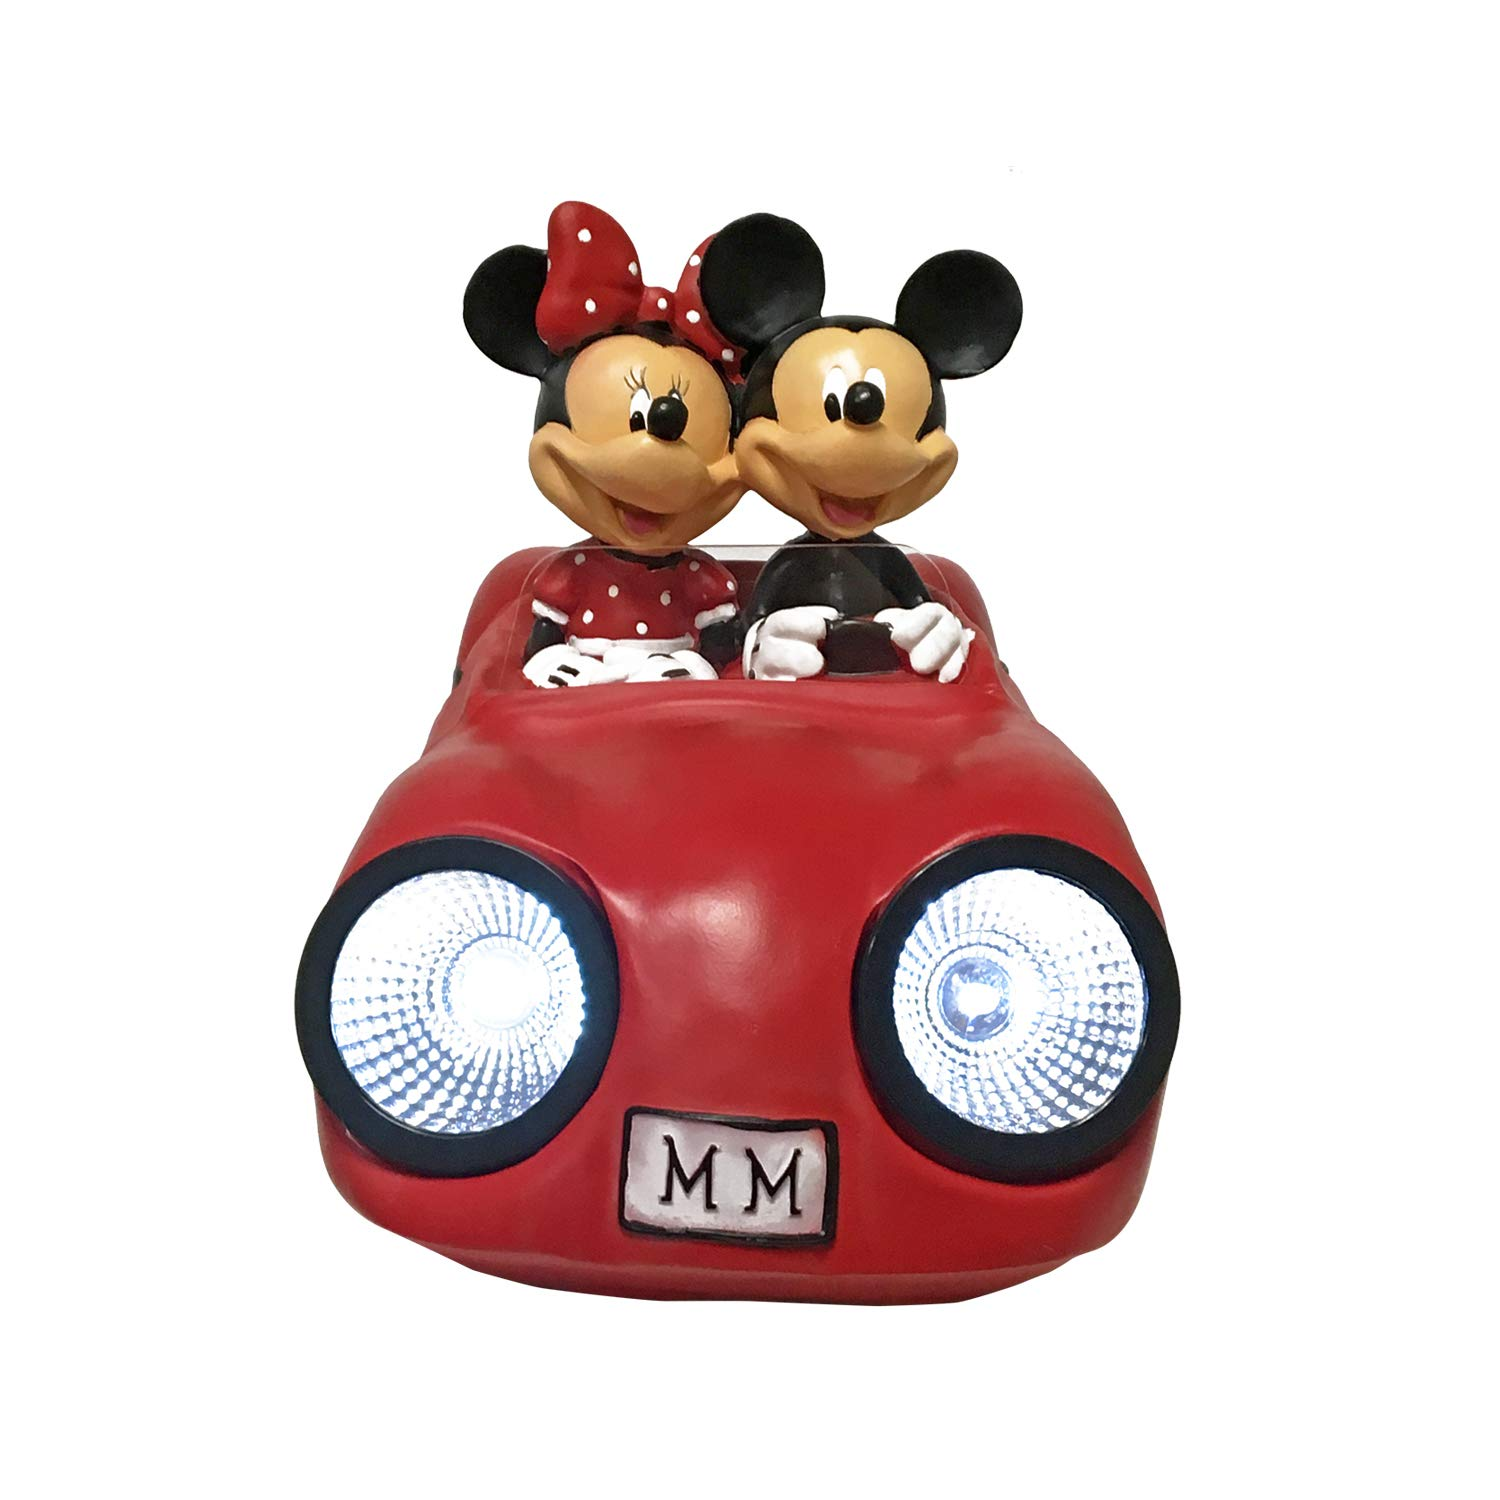 The Galway Company Mickey & Minnie Solar LED Lighted Sports Car, Hand-Painted. Large 7 Inches Tall X 12 Inches in Length, Official Disney Licensed Product